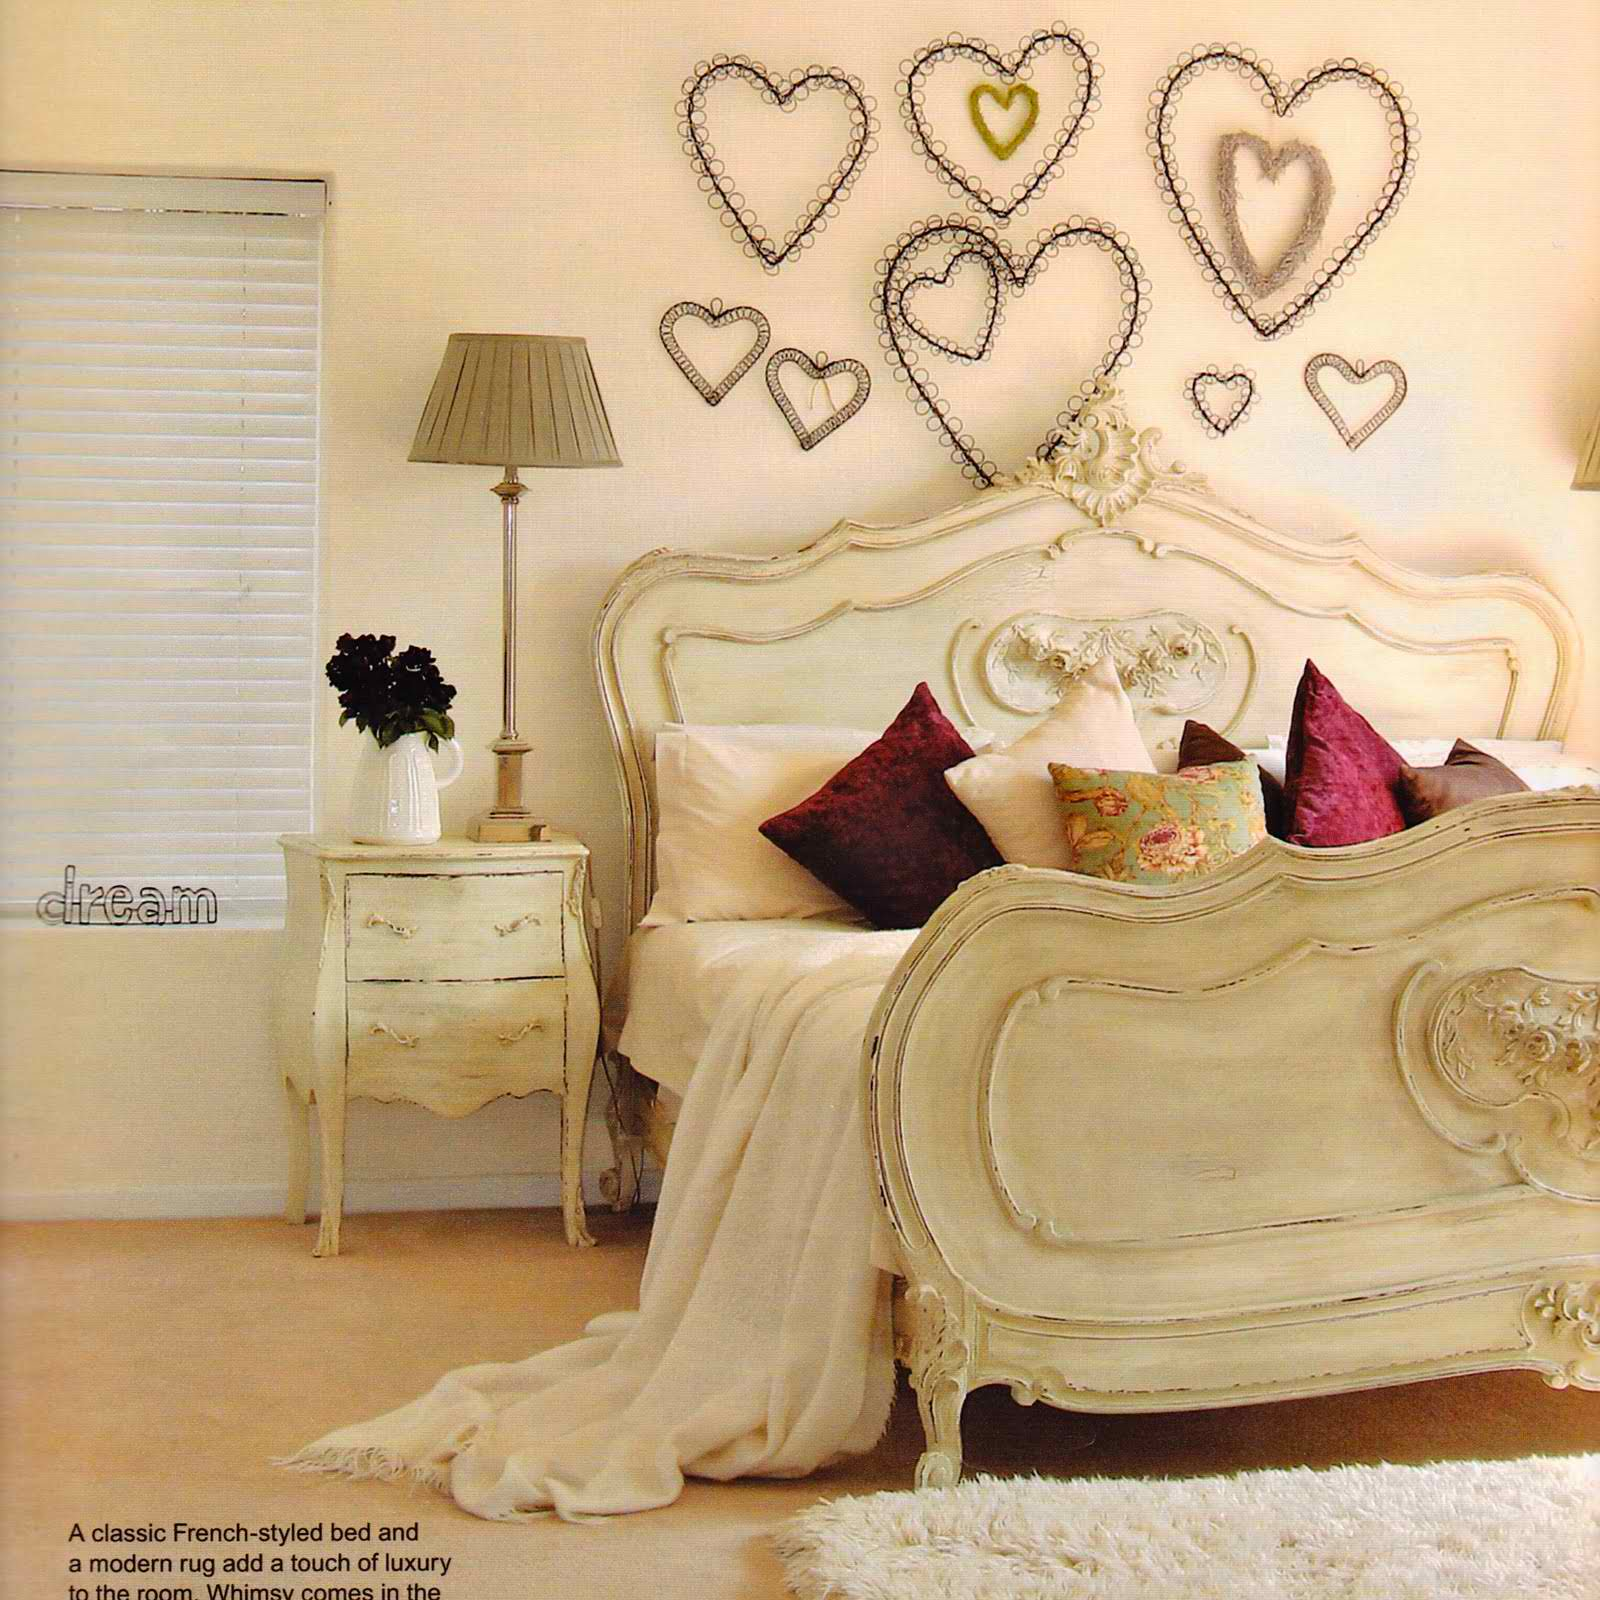 20 romantic bedroom ideas decoholic. Black Bedroom Furniture Sets. Home Design Ideas